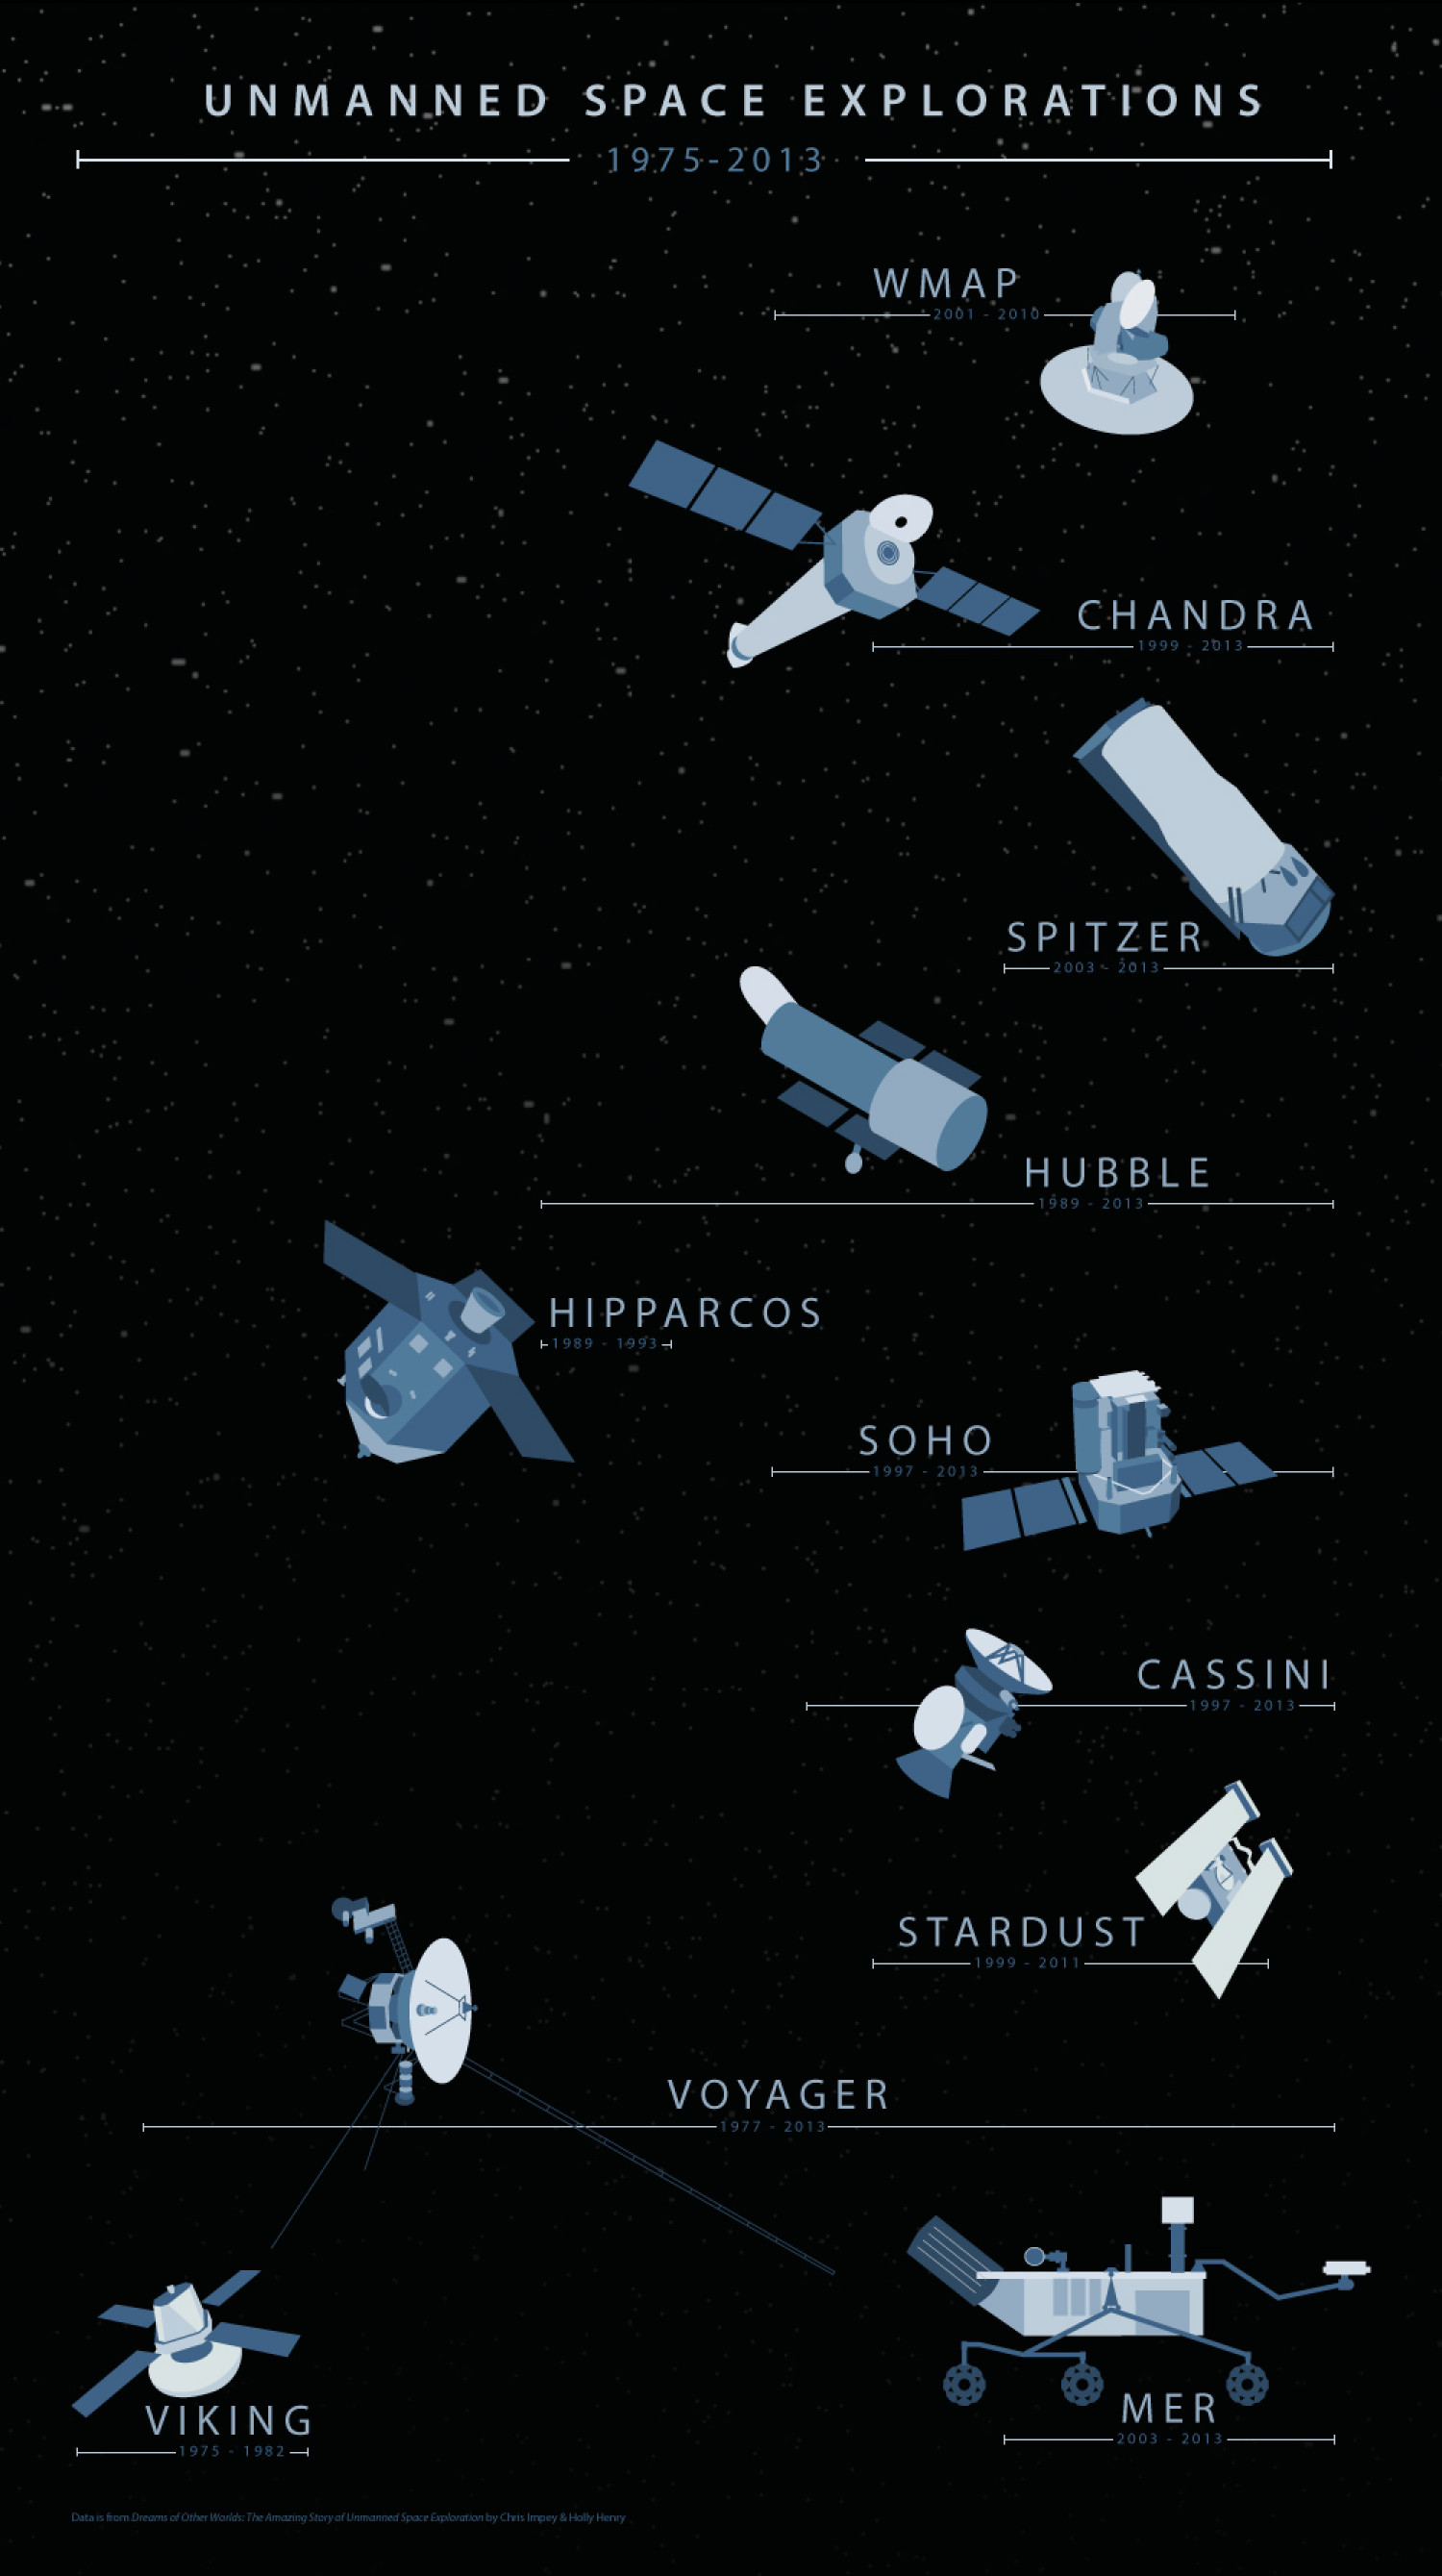 Unmanned Space Explorations, 1975-2013 Infographic